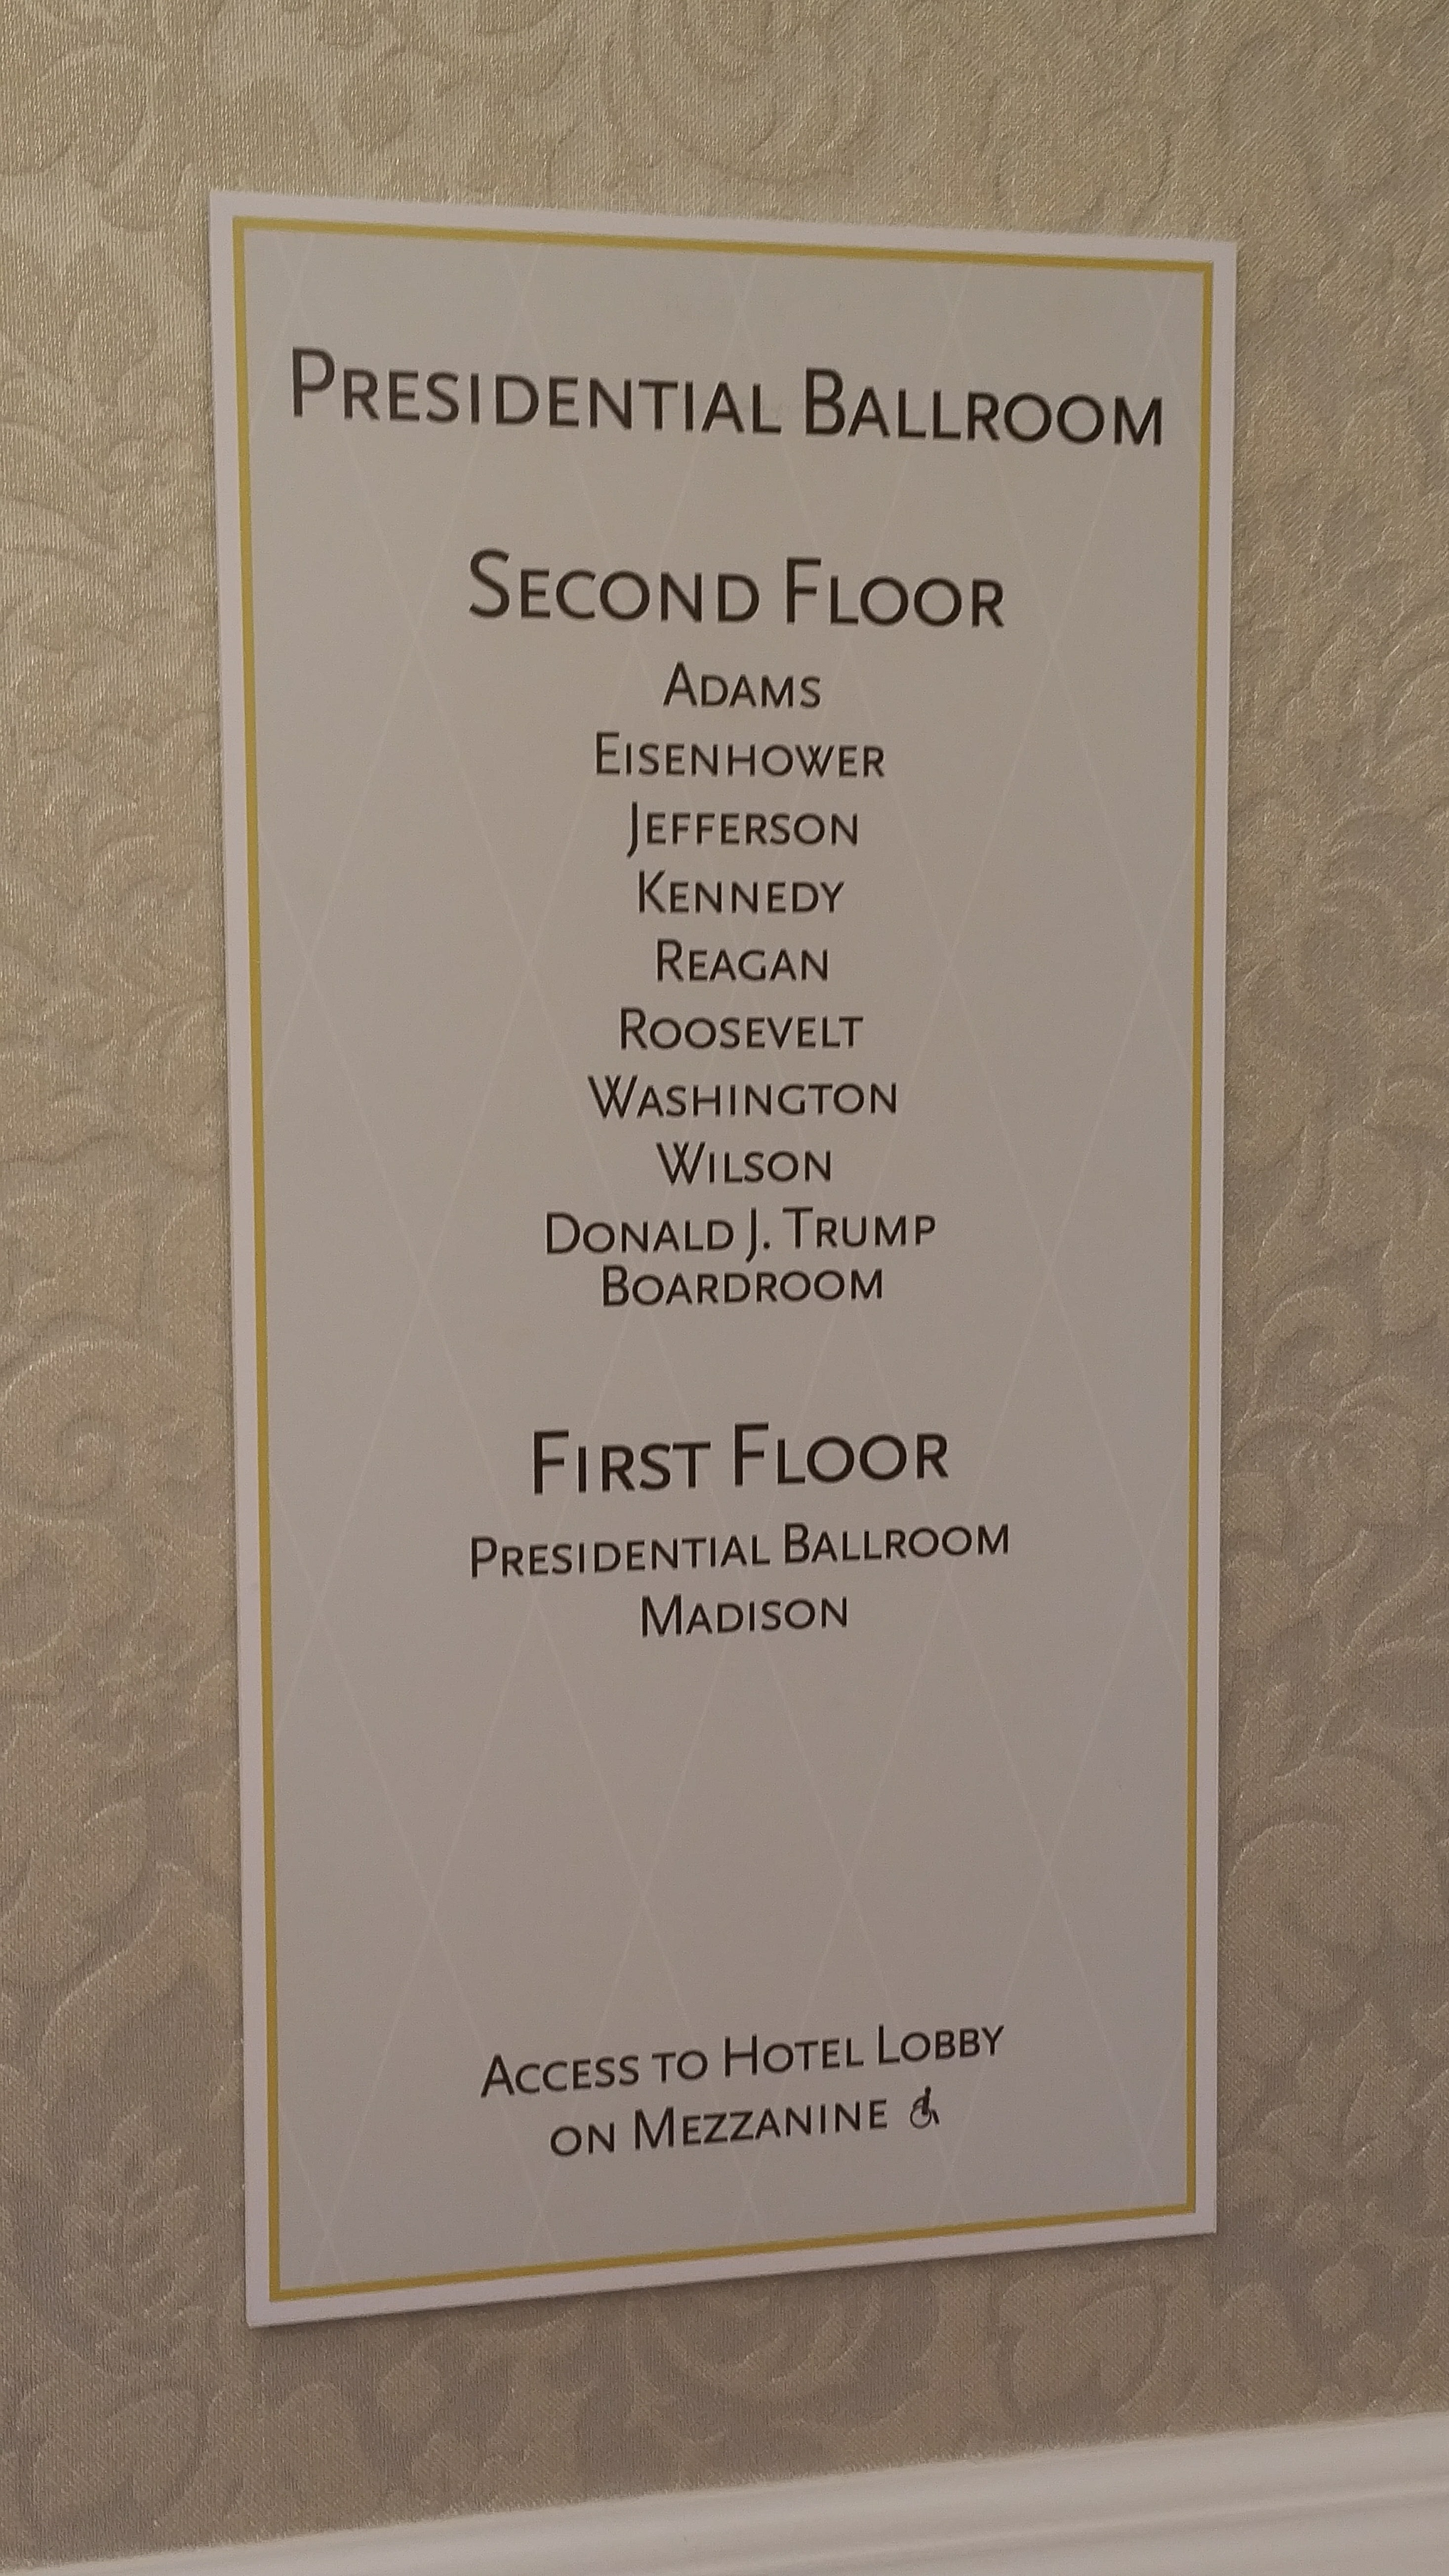 directory for Trump International Hotel ballrooms